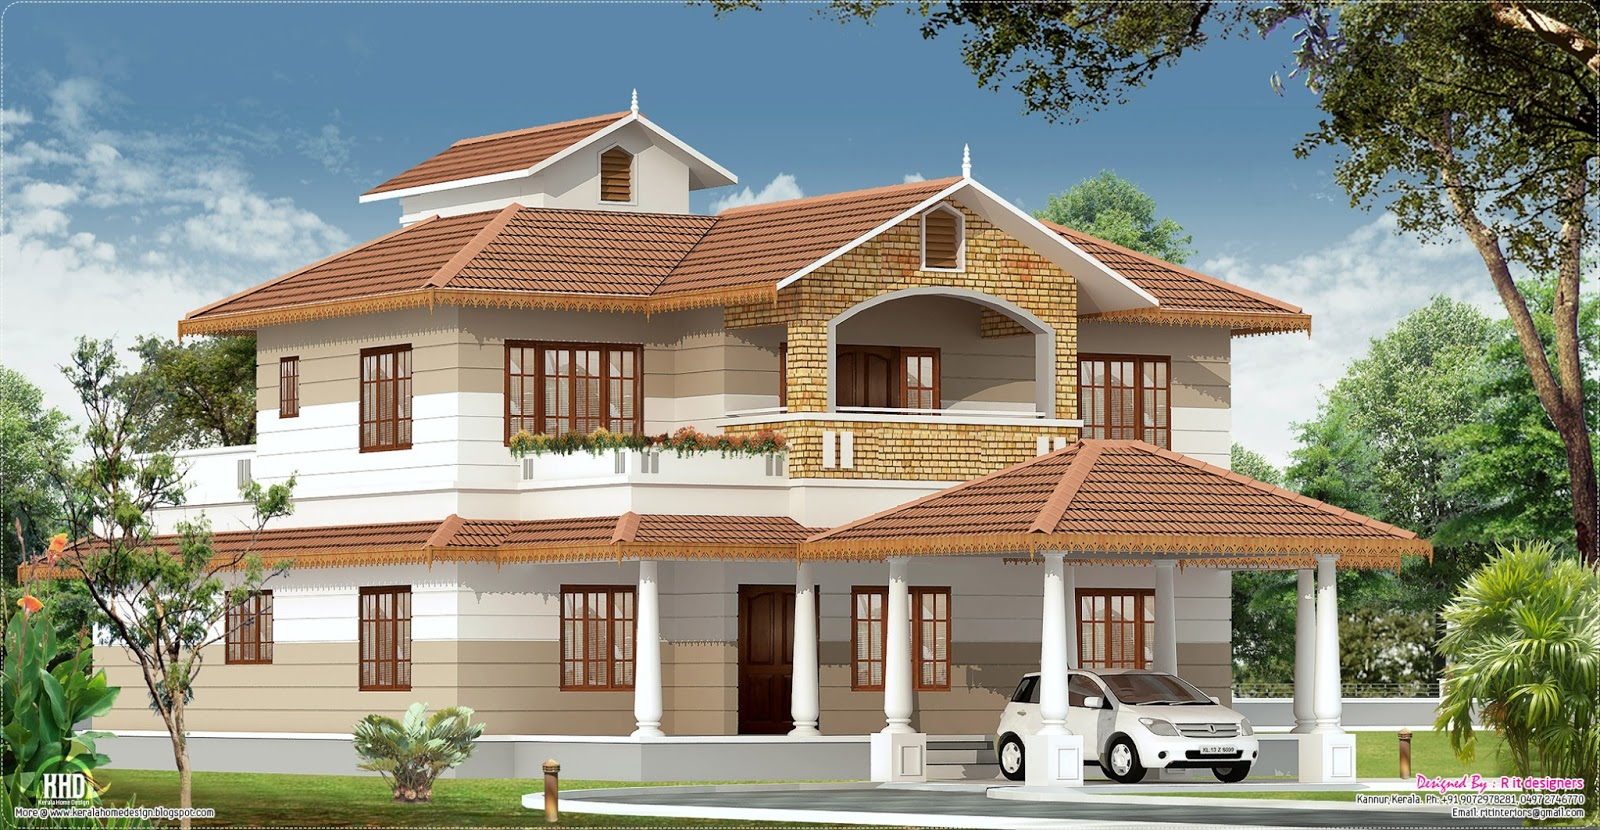 Kerala style house models omahdesigns net for New home design in kerala